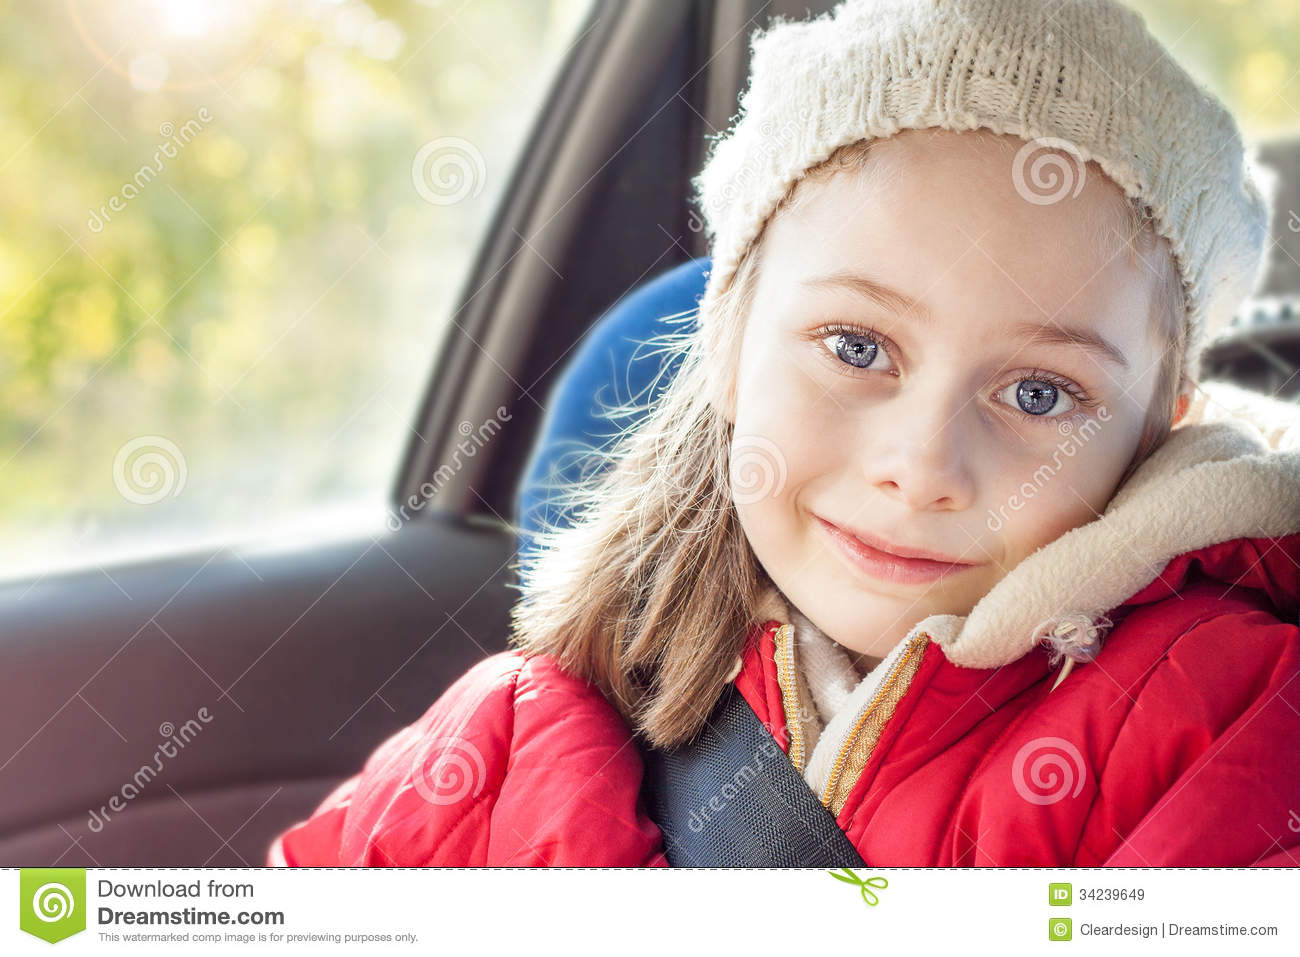 Happy Smiling Small Five Years Old Caucasian Girl In Warm Clothes Traveling A Car Seat